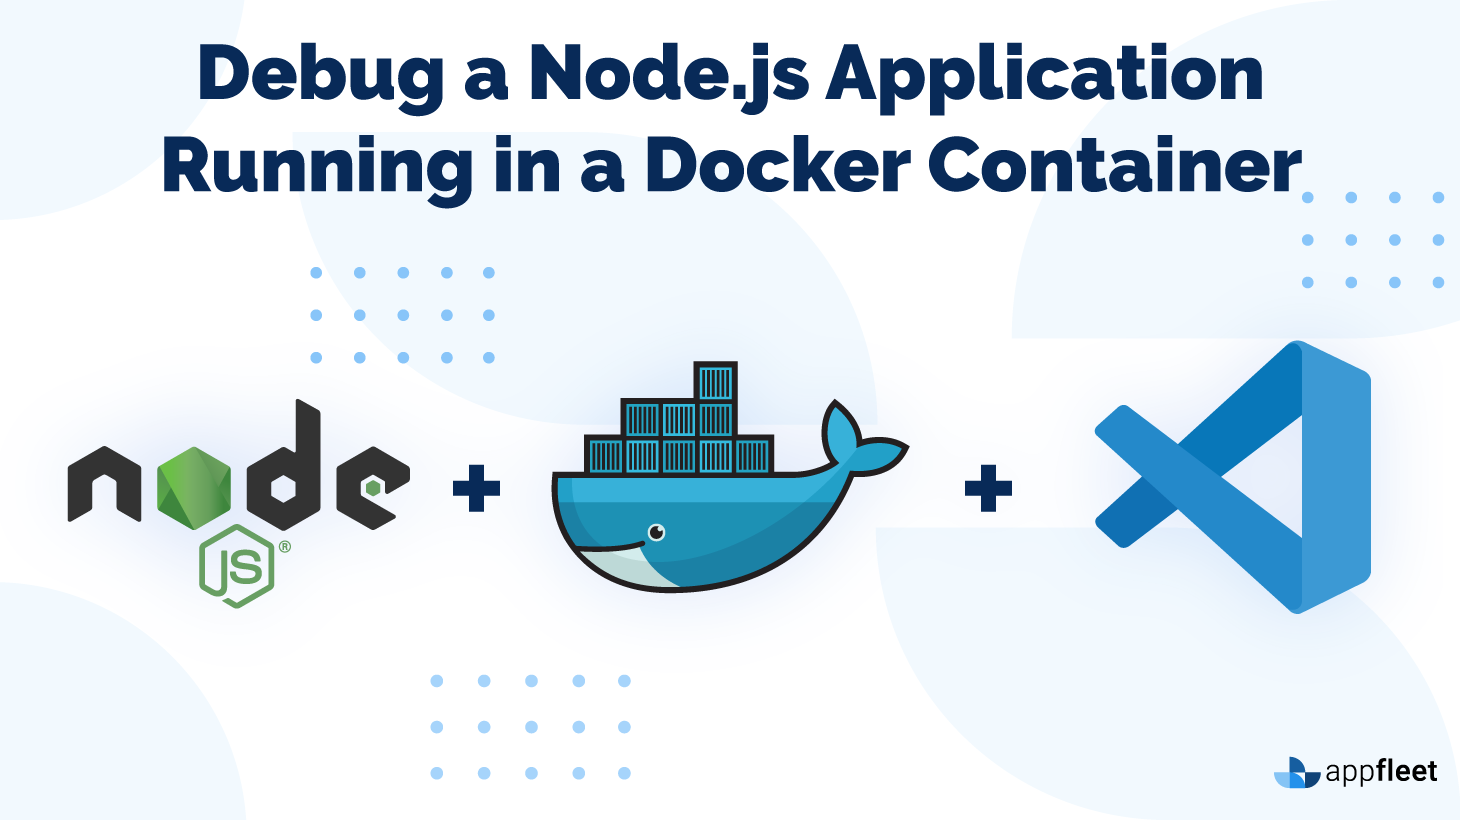 Debug a Node.js Application Running in a Docker Container